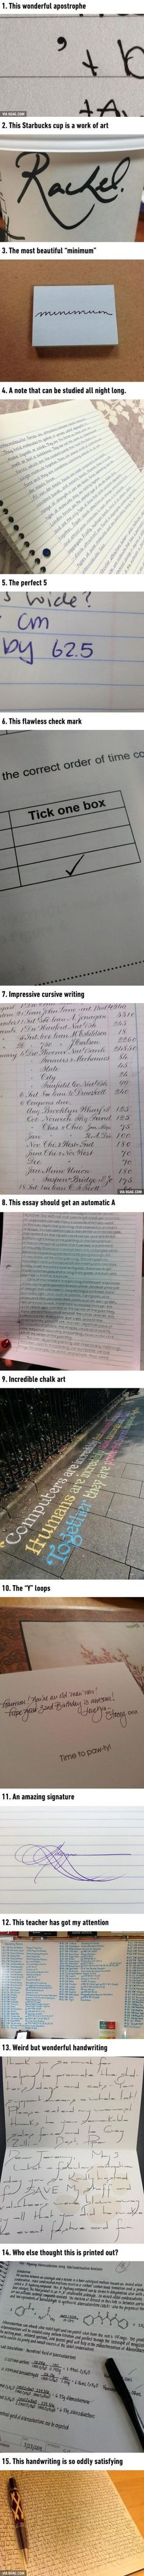 Pieces Of Handwriting That Are So Satisfying